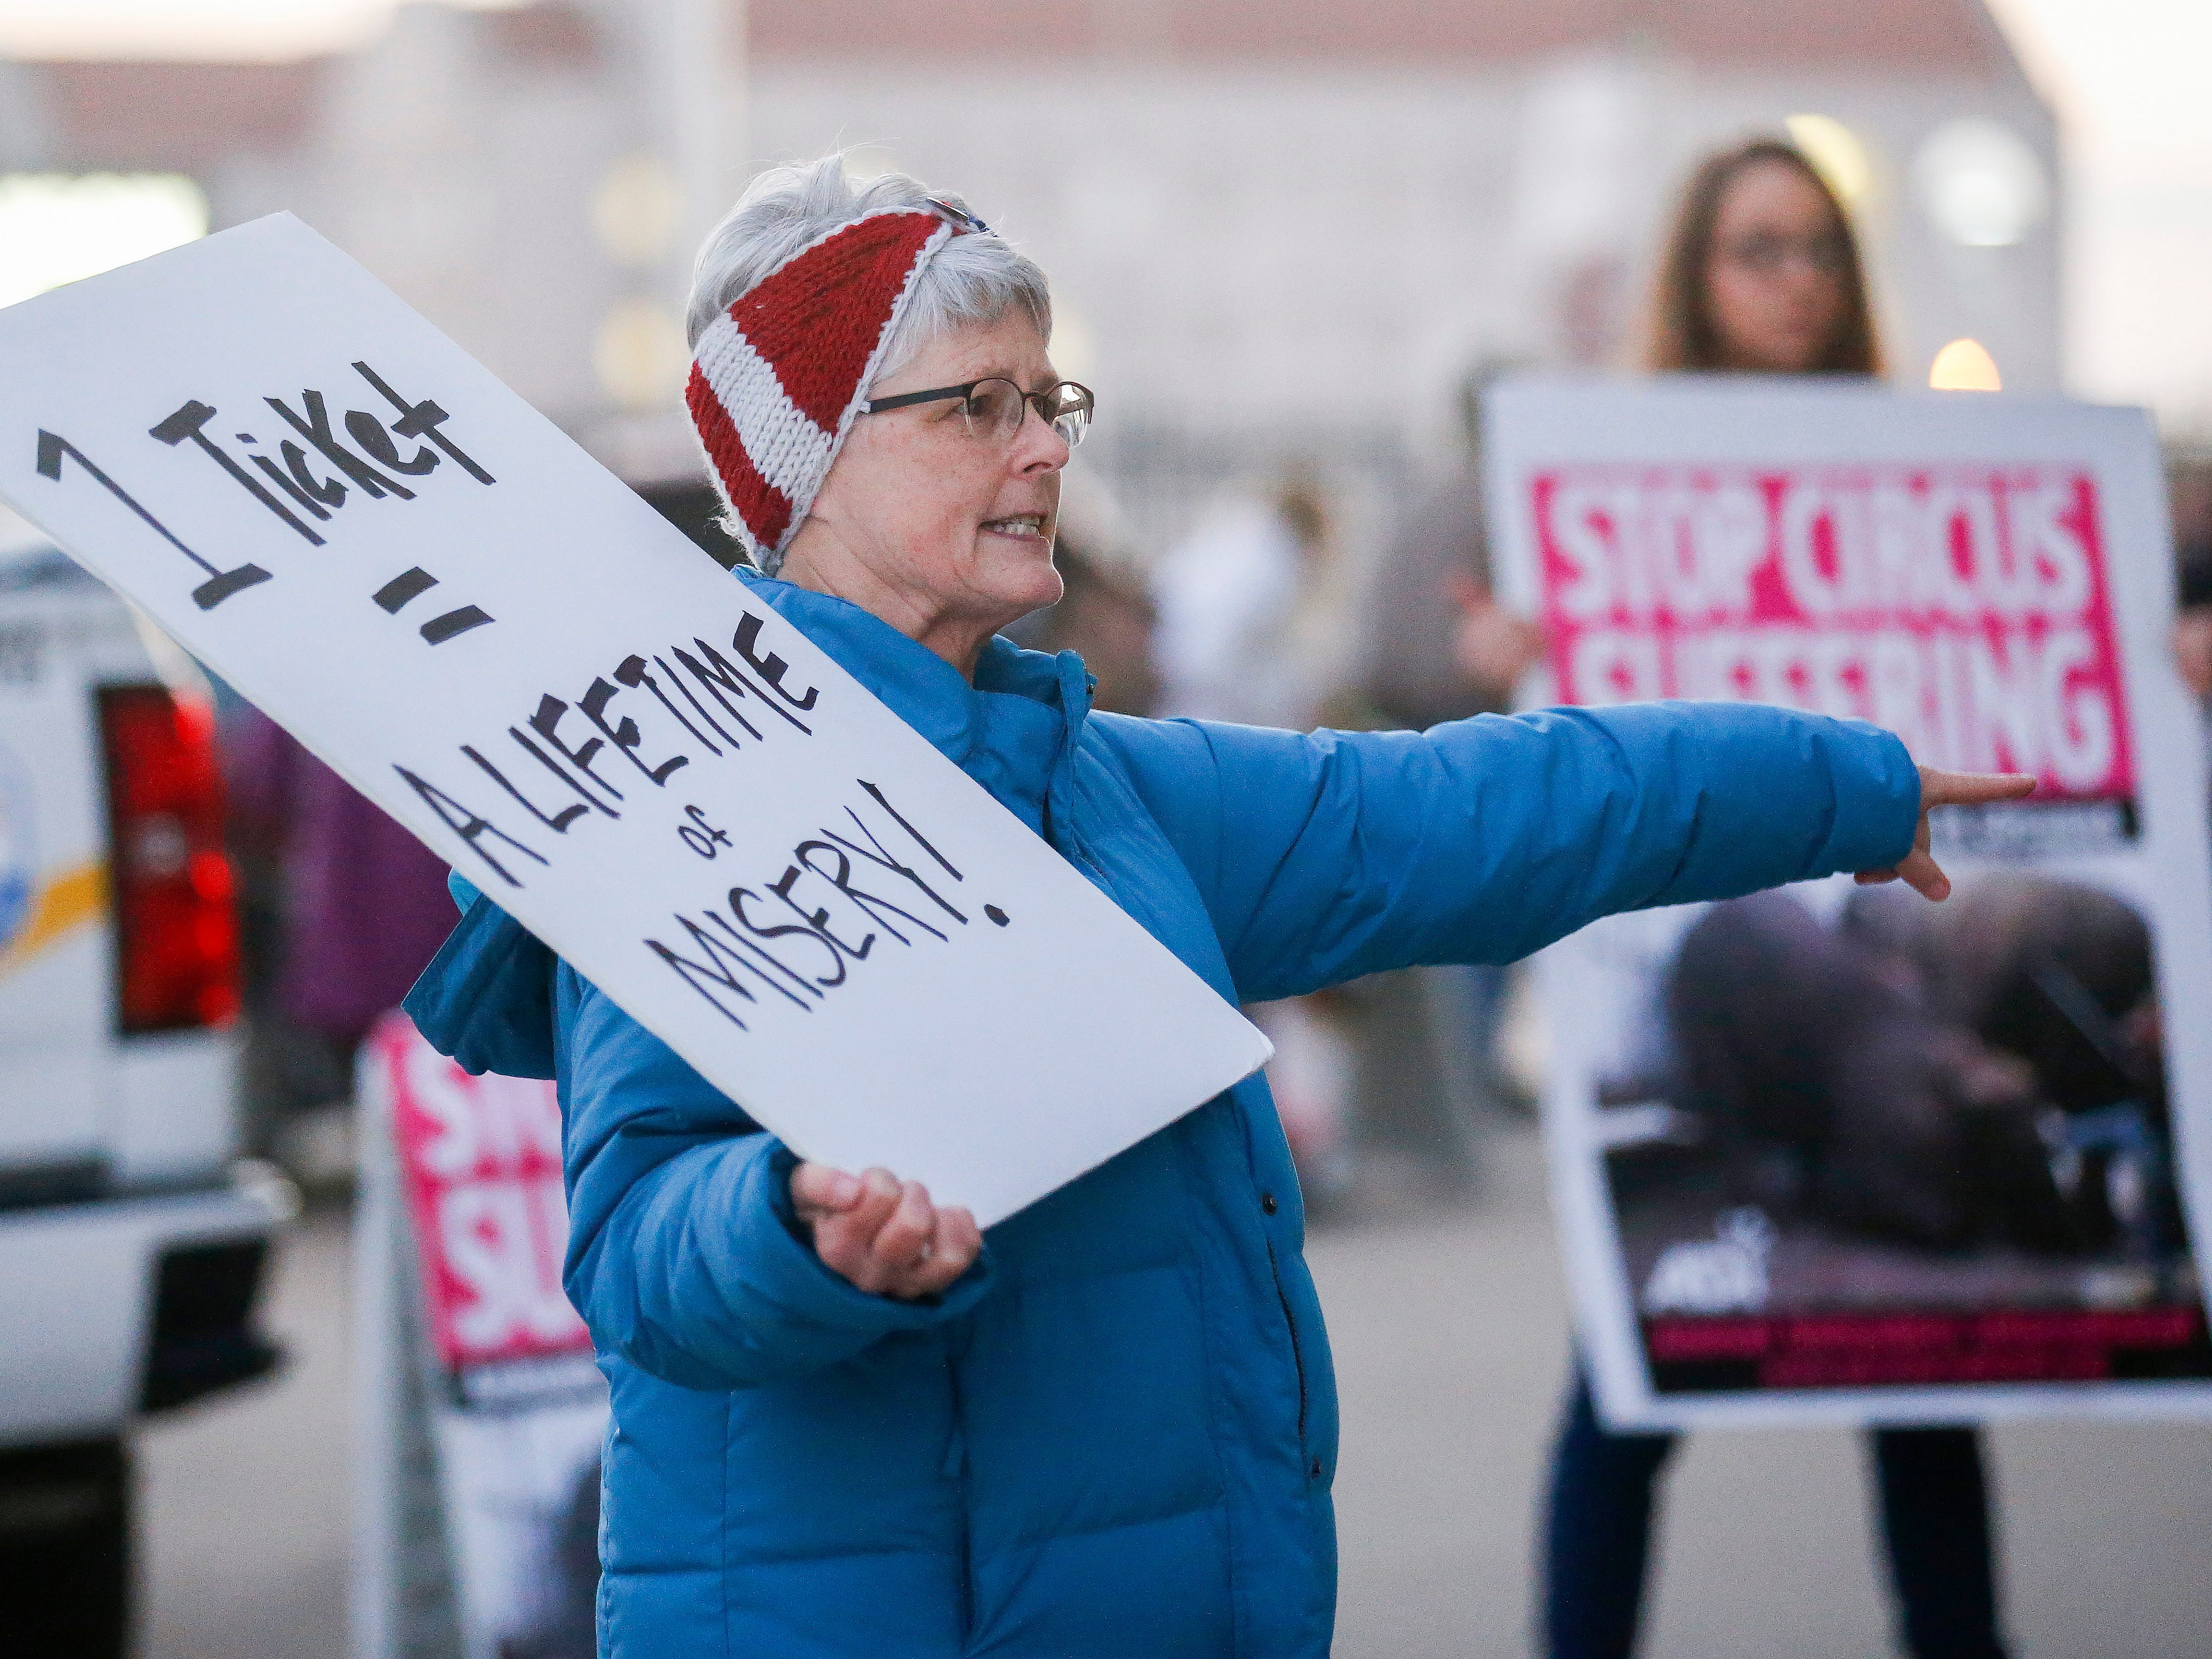 Animal rights activist Laura Umphenour protests in front of JQH Arena against the use of animals in the Carden Circus on Friday, Feb. 1, 2019.